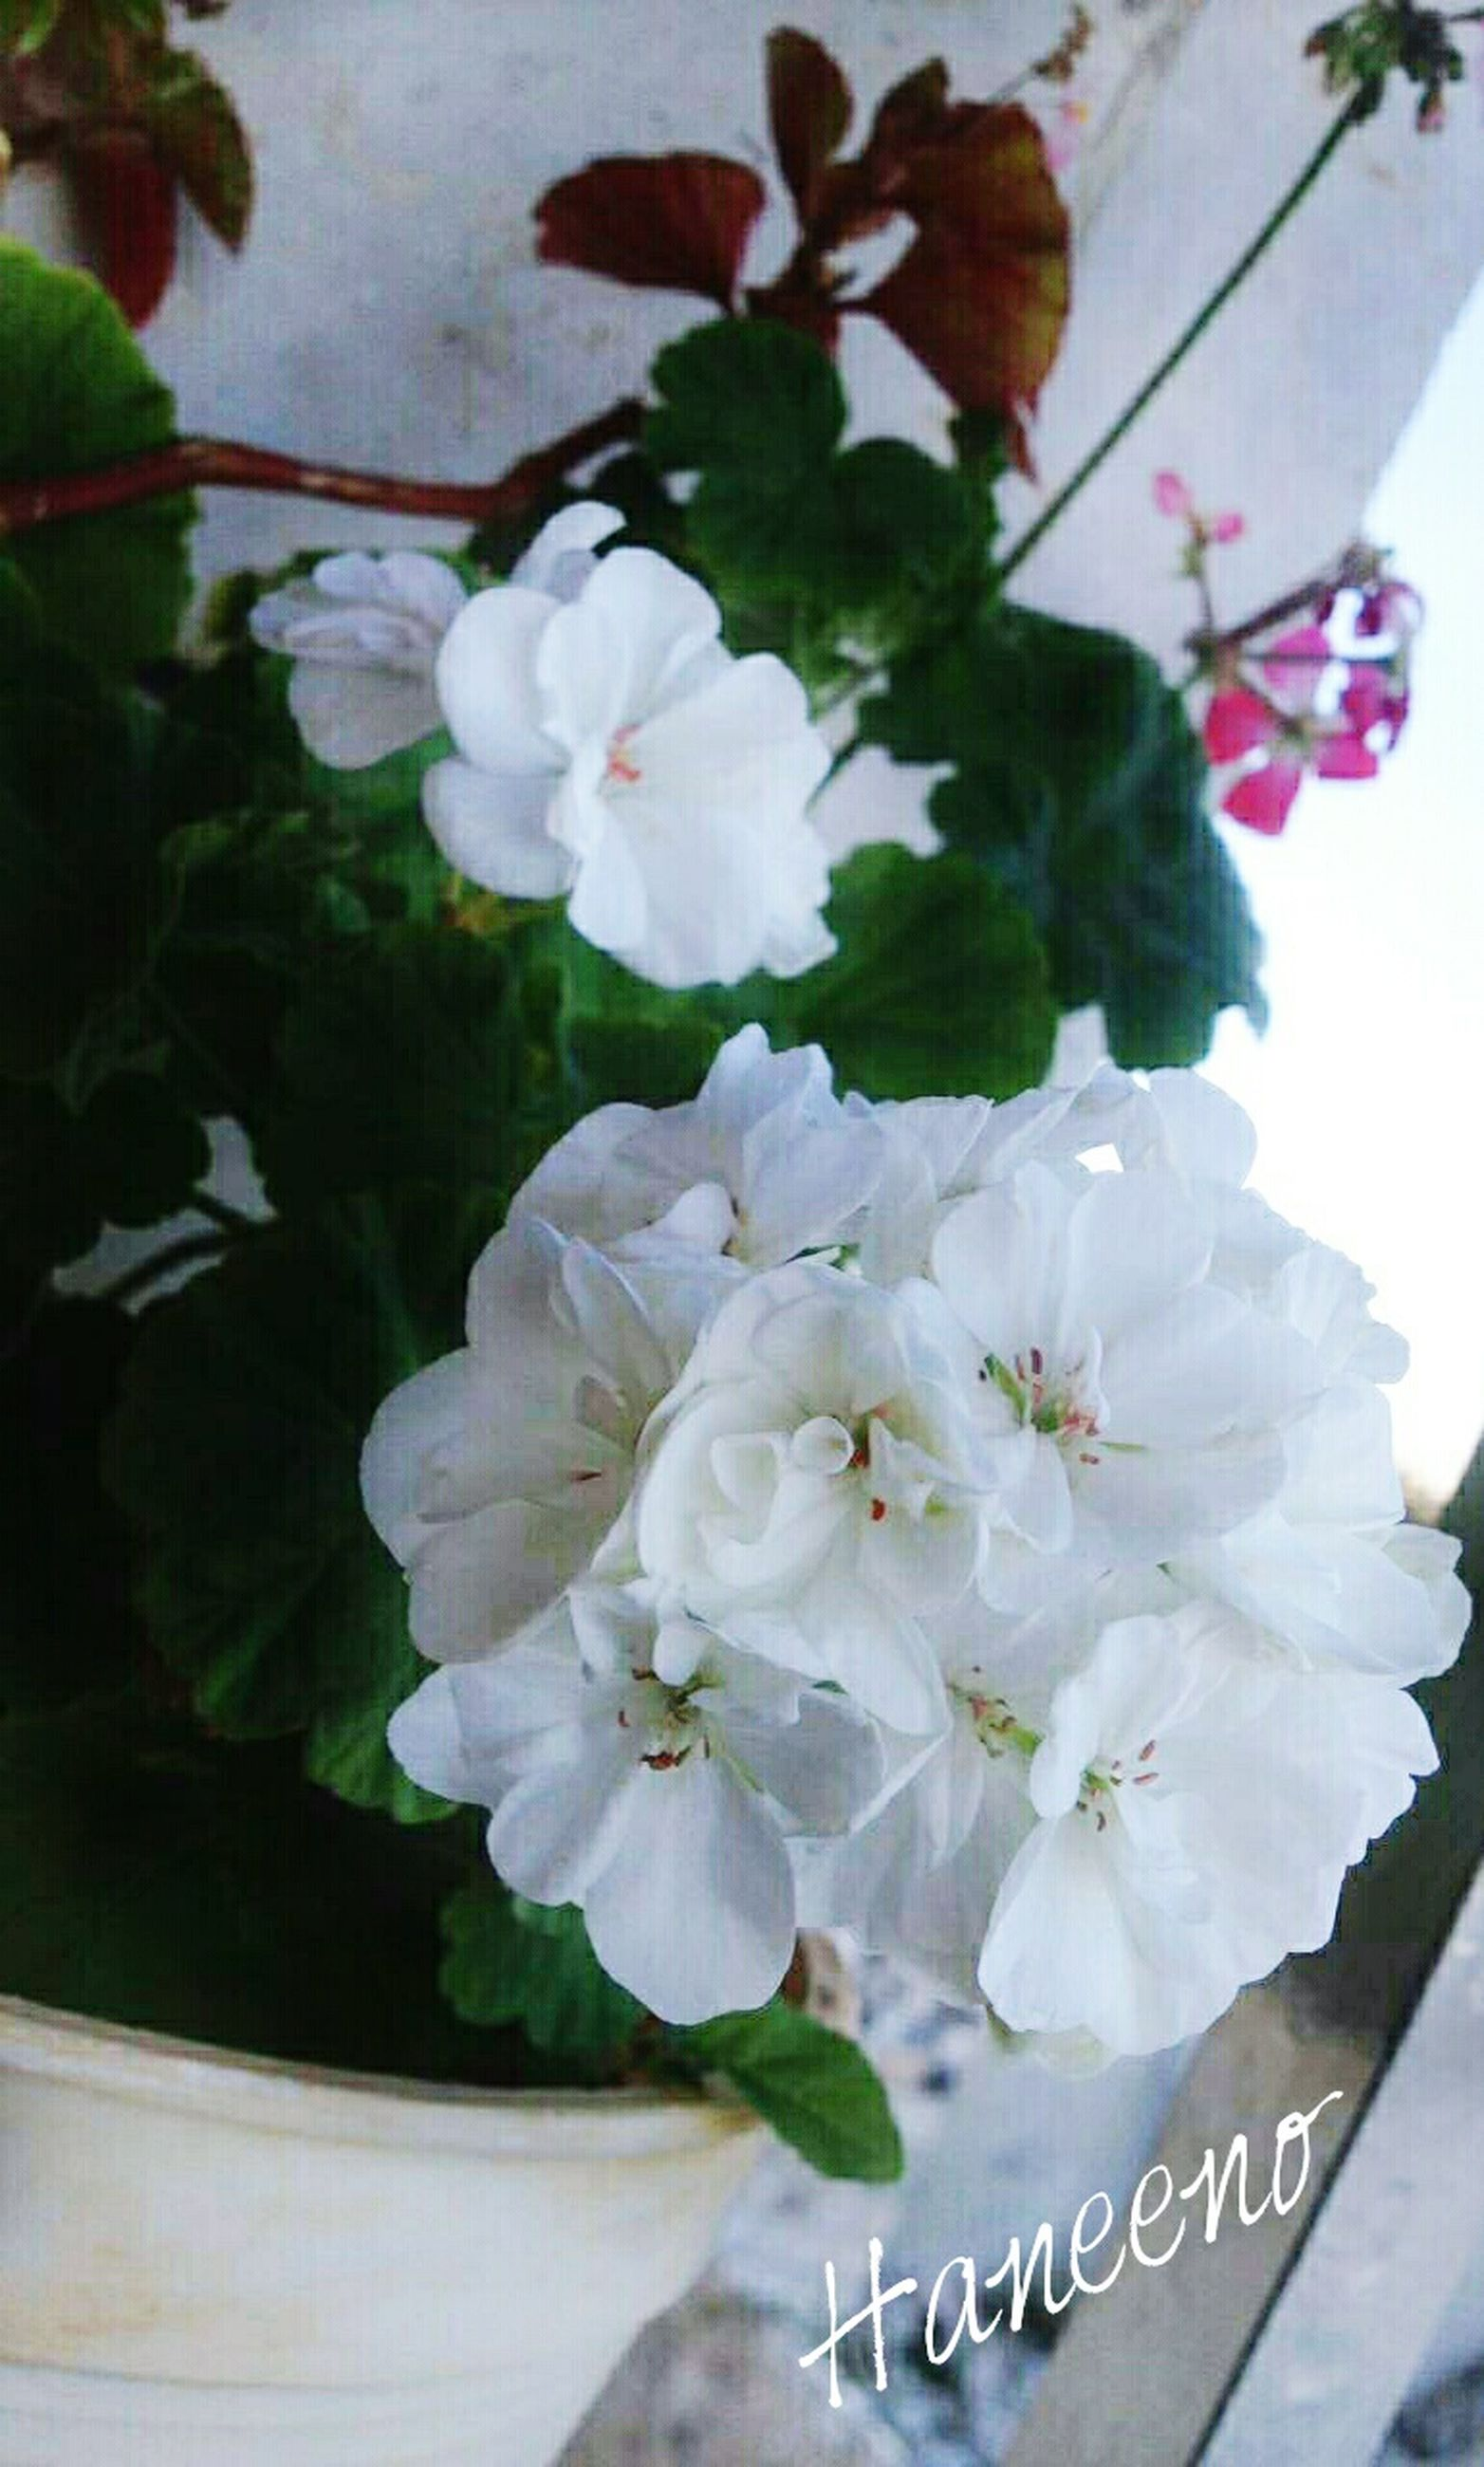 flower, freshness, fragility, petal, white color, growth, beauty in nature, flower head, nature, blooming, blossom, bunch of flowers, close-up, in bloom, plant, leaf, botany, white, no people, focus on foreground, day, cherry tree, stamen, softness, pollen